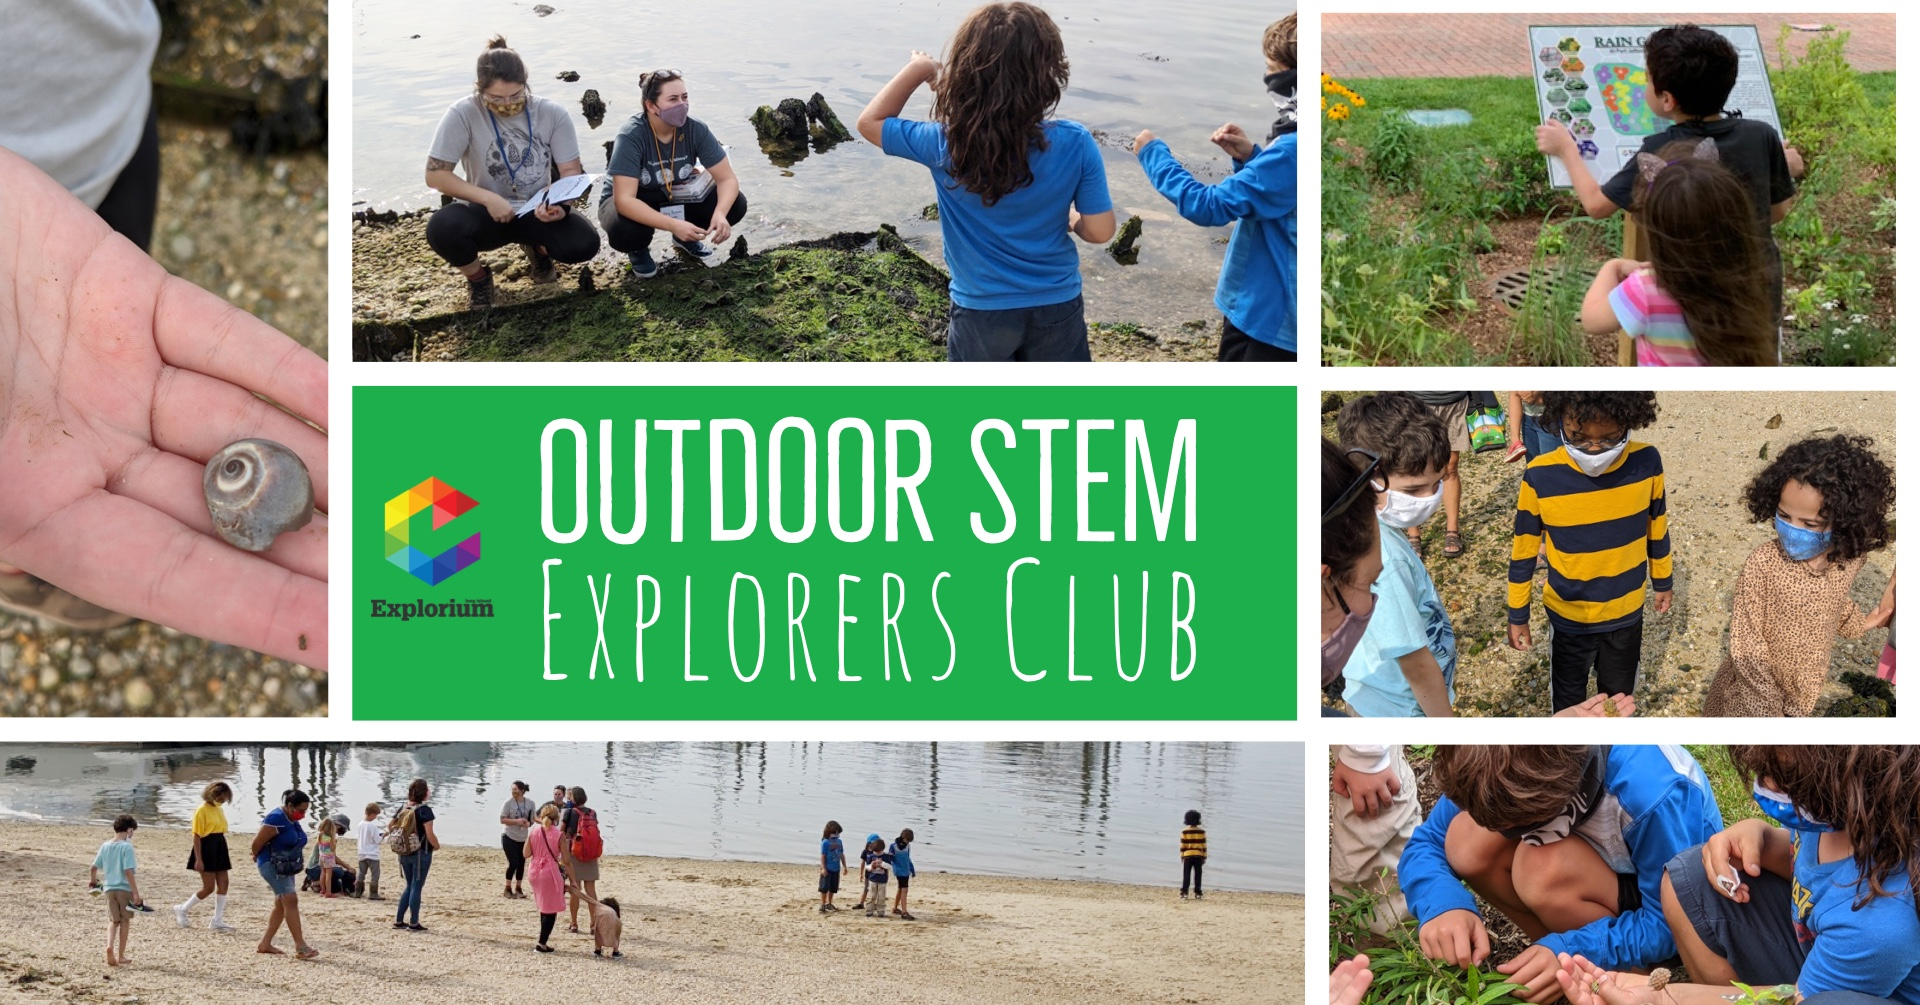 Outdoor stem club